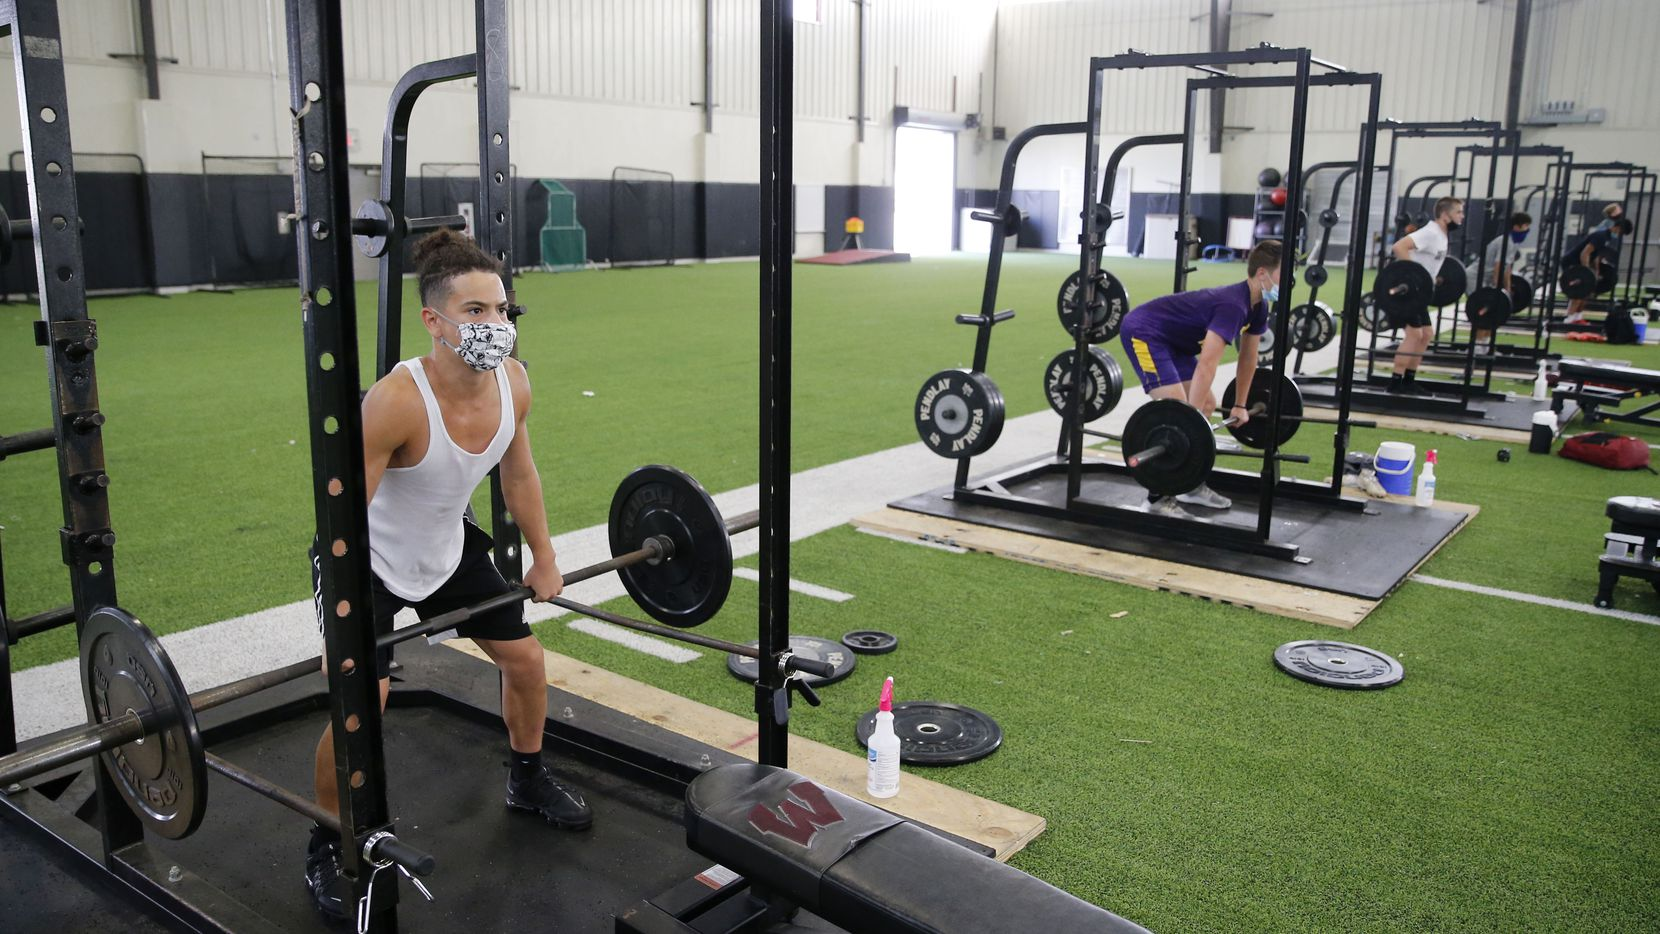 Wylie's Brandon Smith works out during football practice at Wylie High School in Wylie, Texas on Thursday, July 23, 2020. Players have their own station and sanitizer to use on the weights.